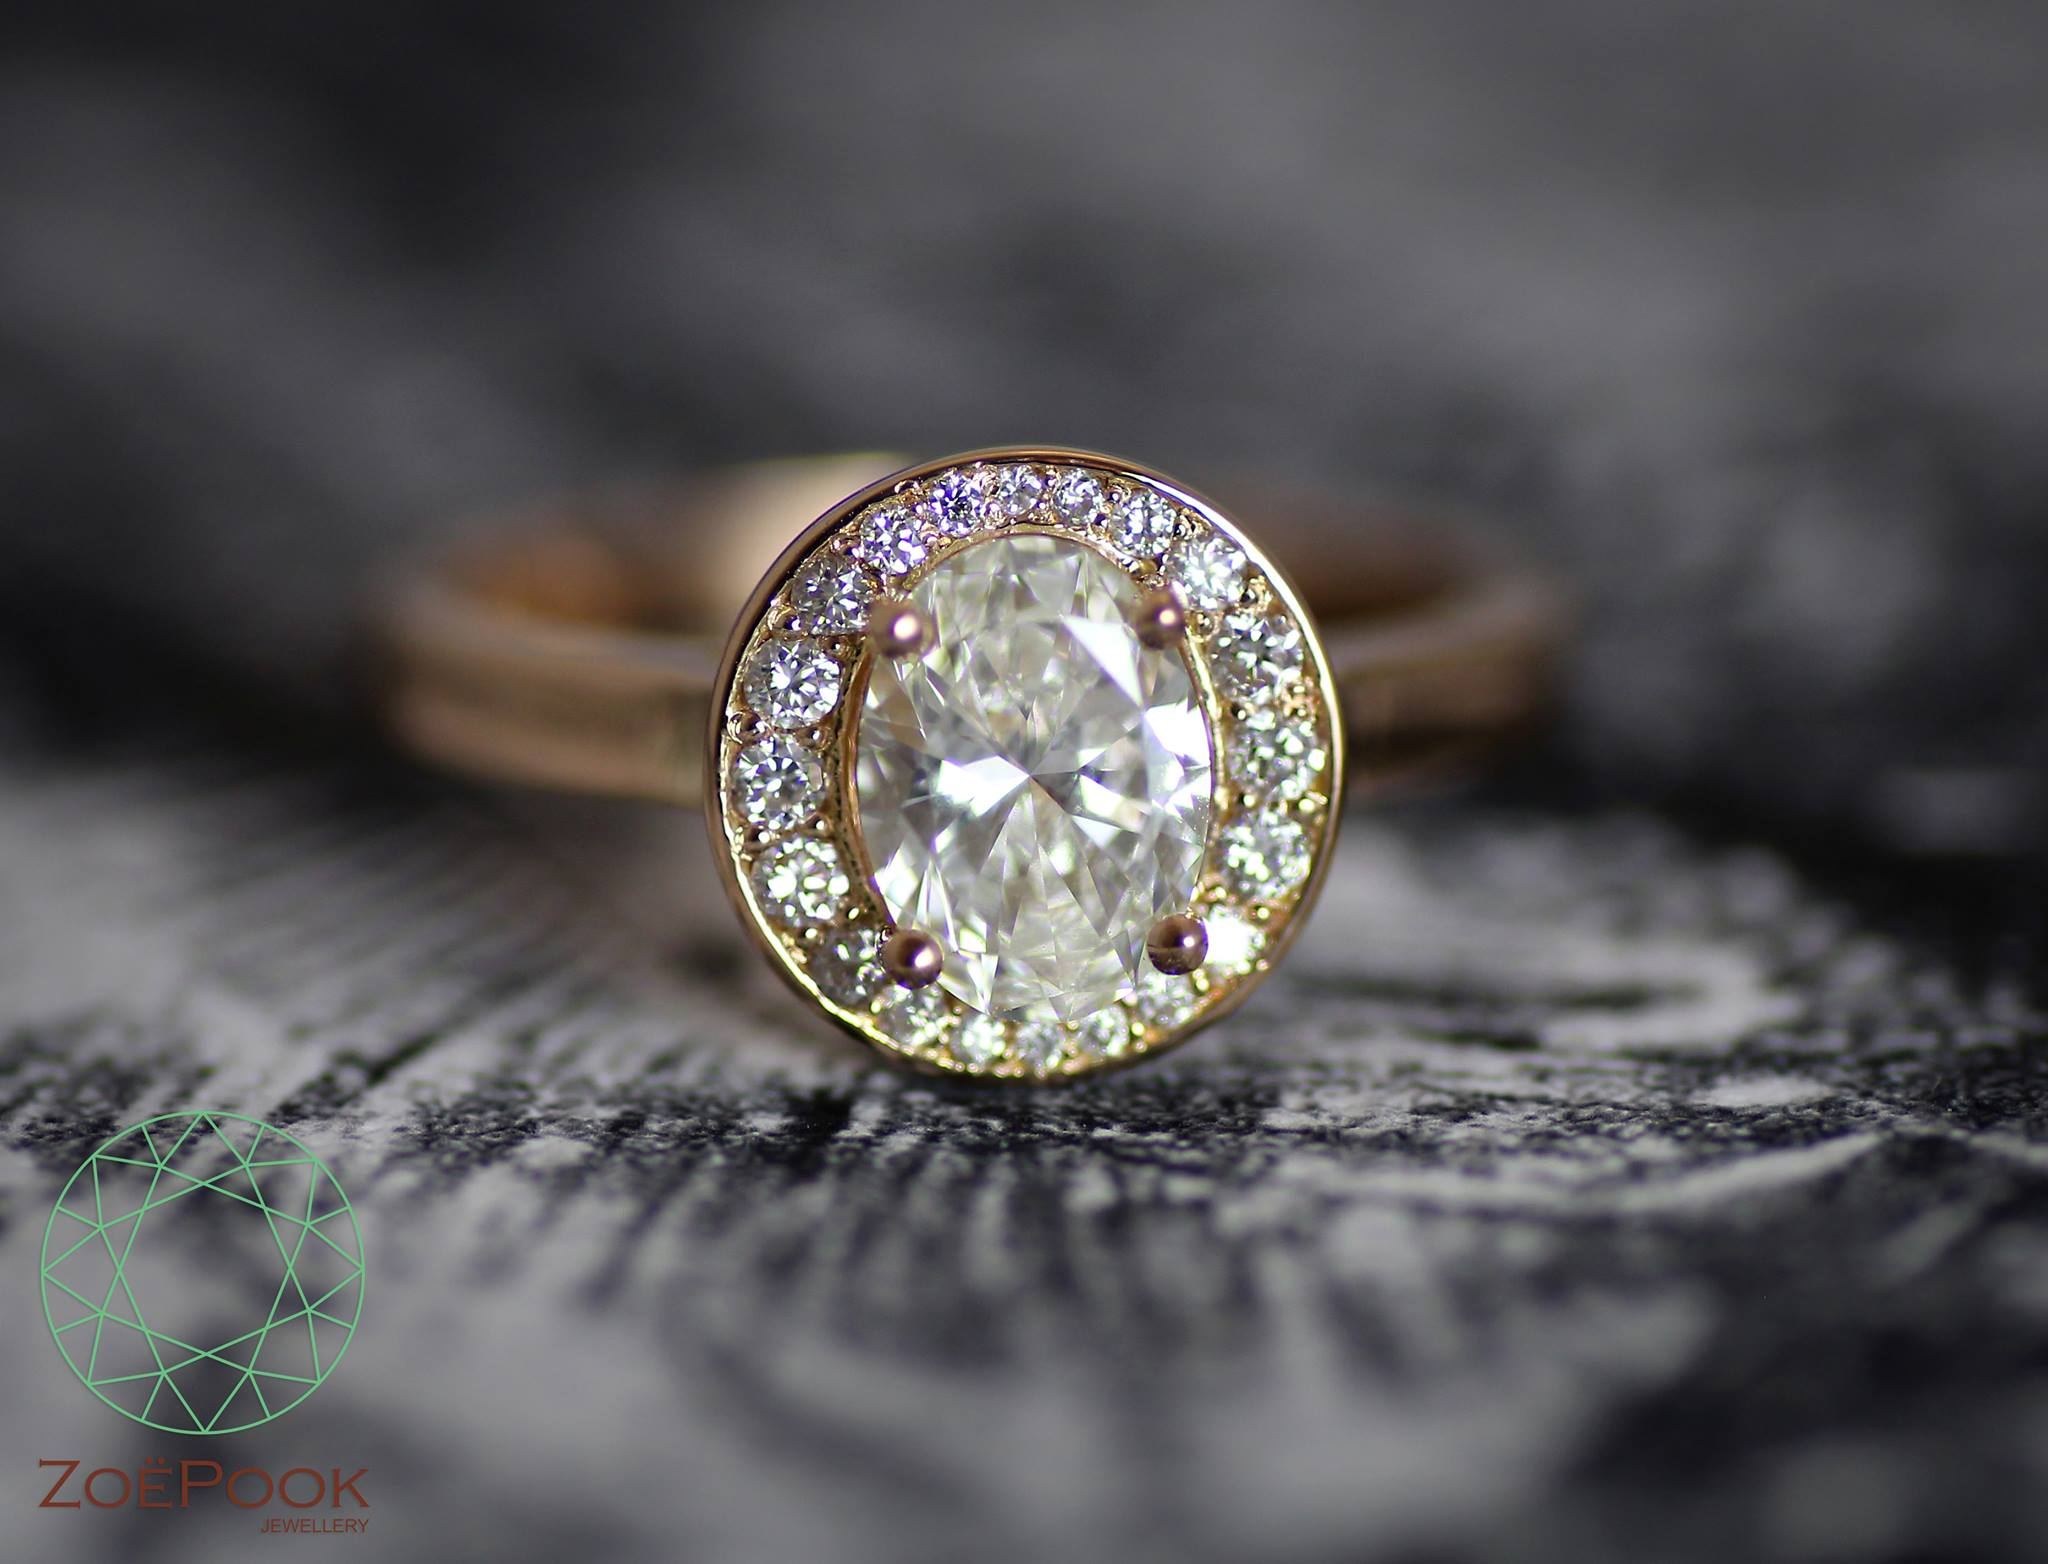 Zoe Pook oval halo engagement ring.jpg